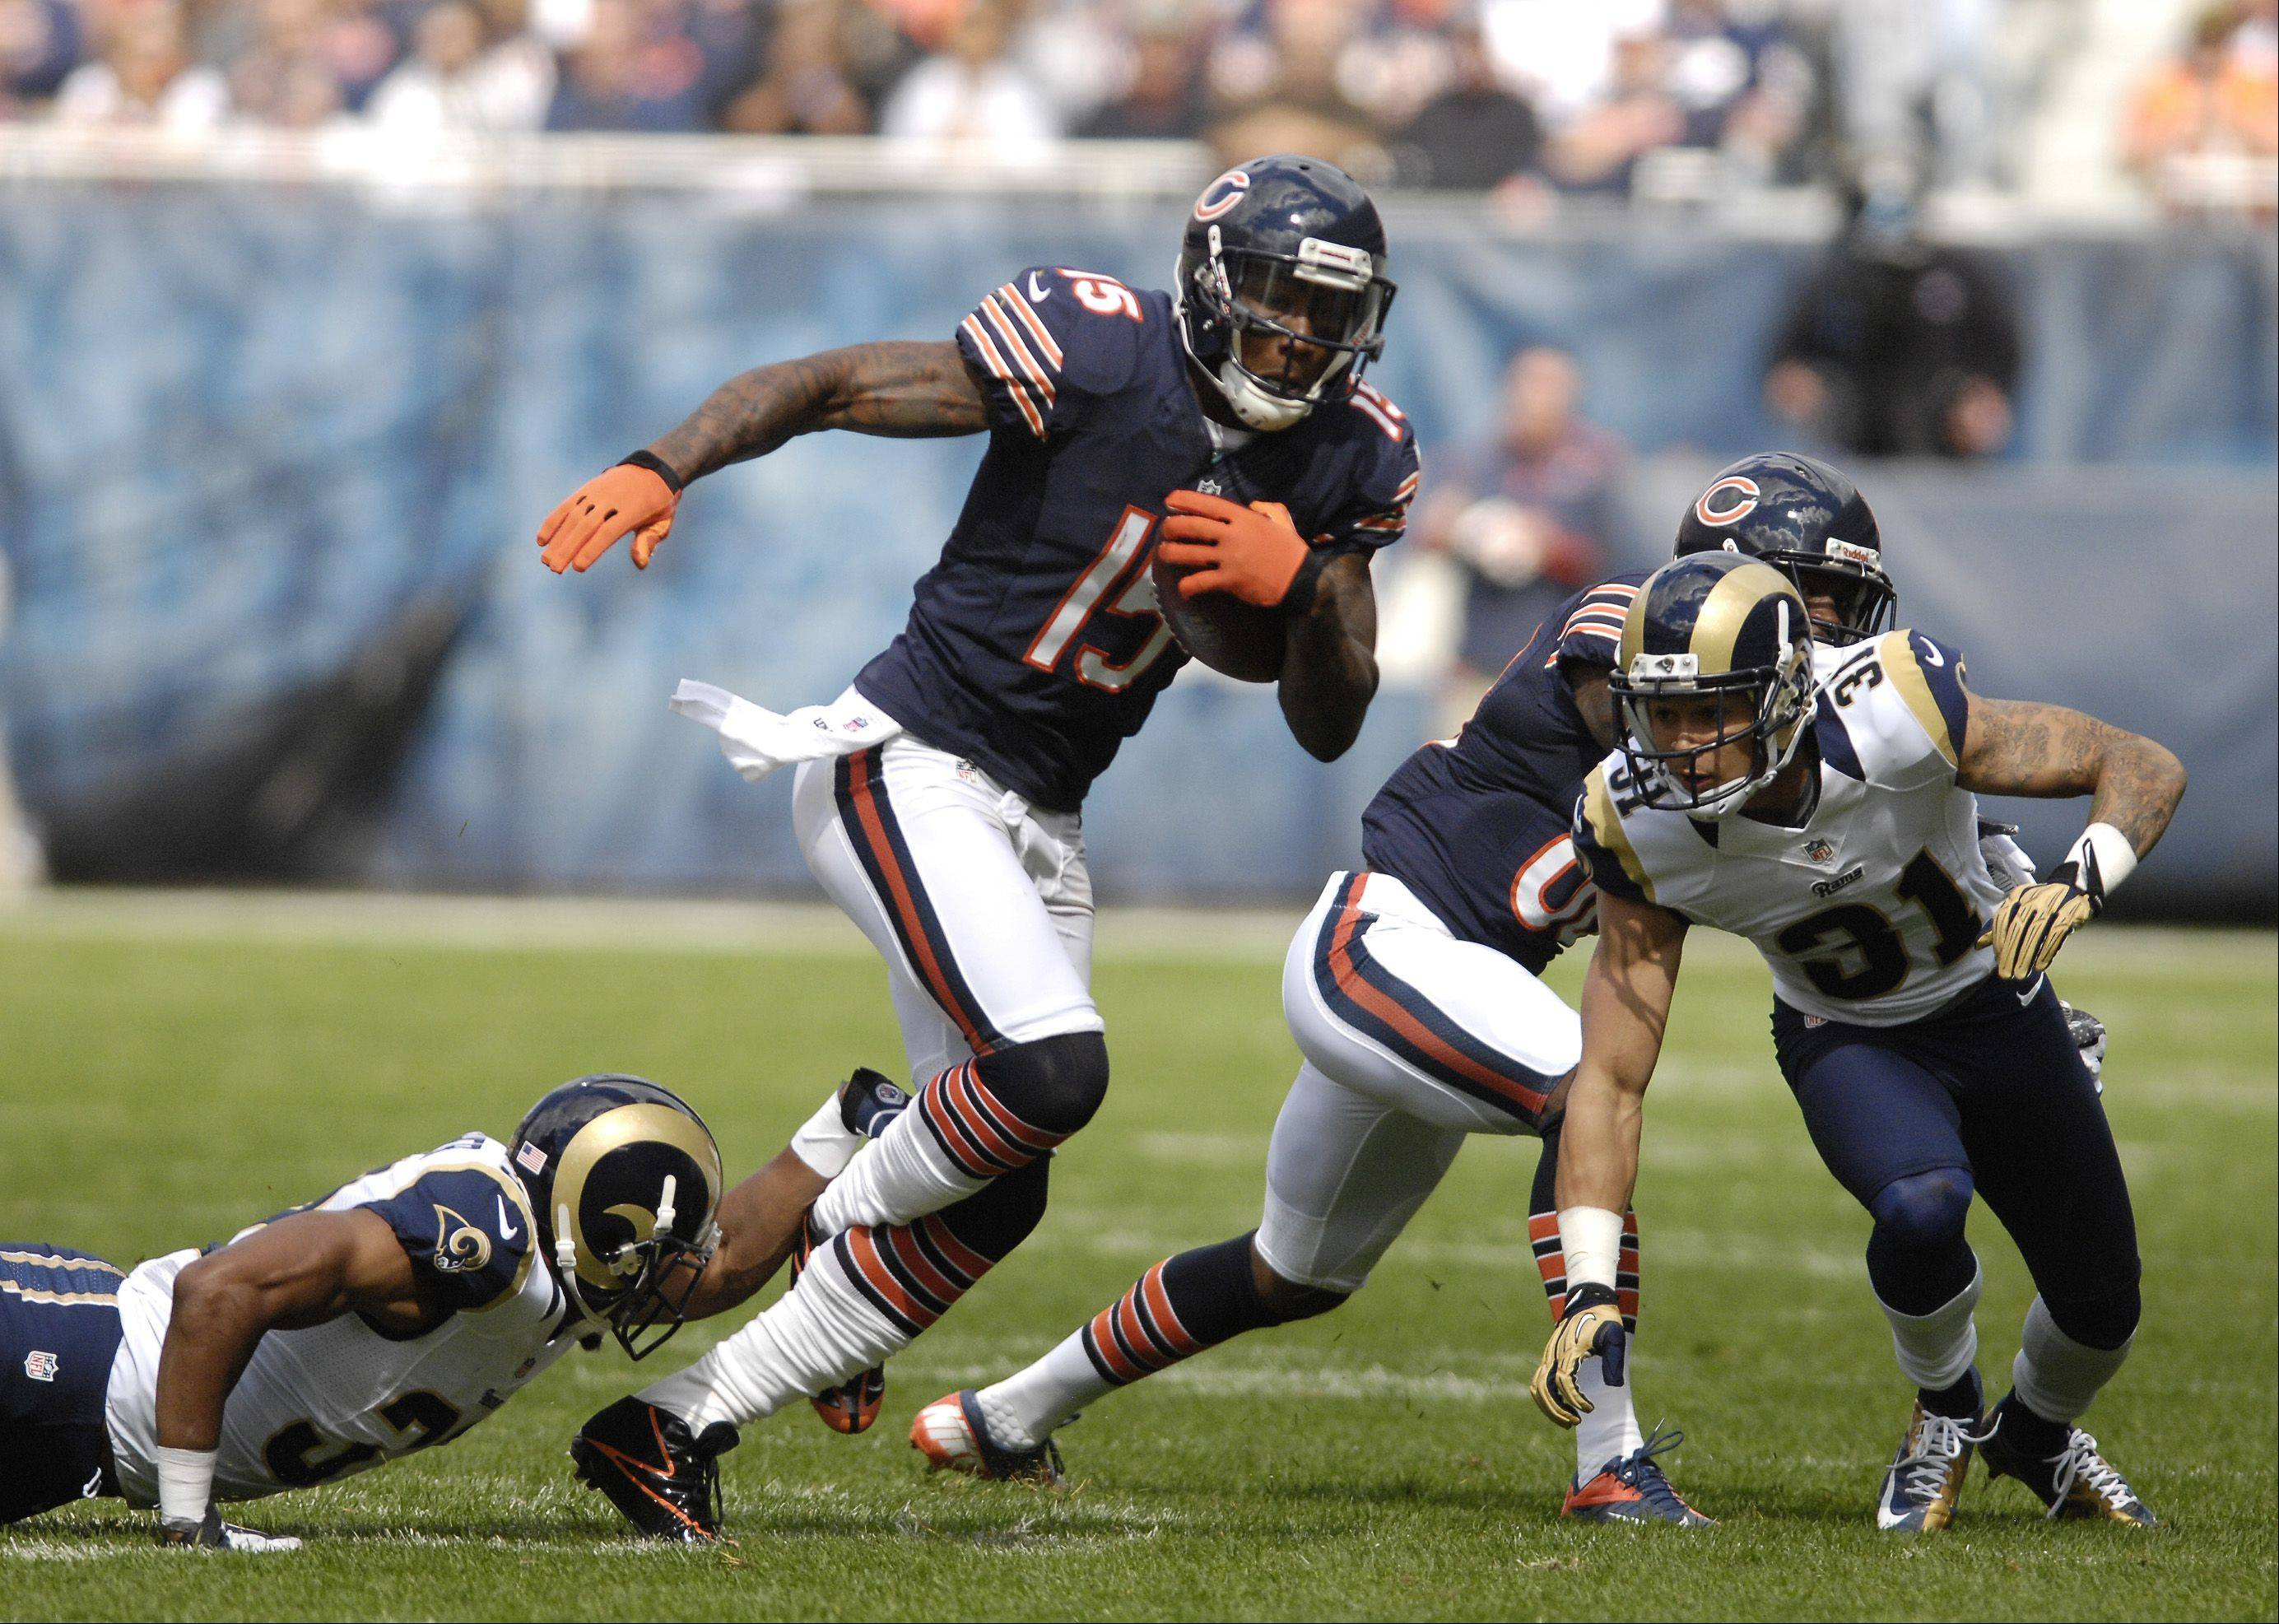 Chicago Bears wide receiver Brandon Marshall looks to gain some yards against the St. Louis Rams at Soldier Field in Chicago.